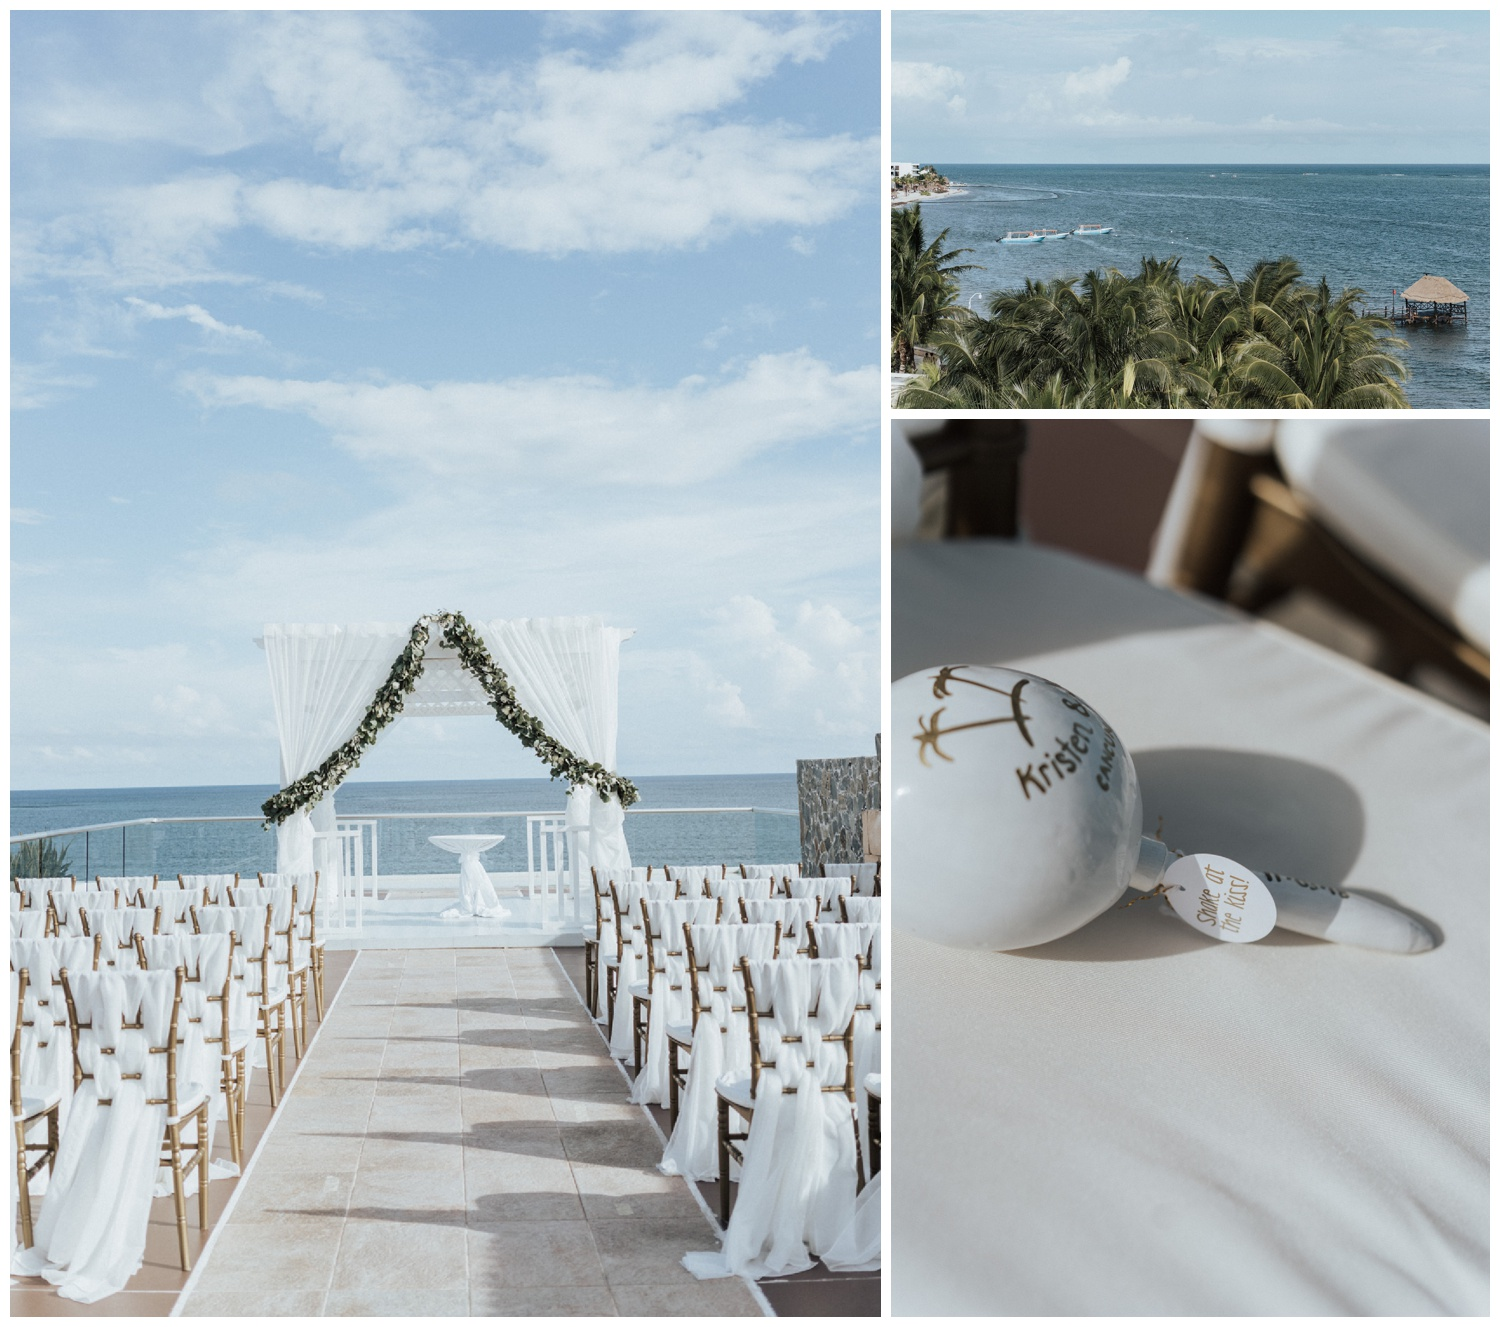 azul beach resort cancun mexico wedding photographer